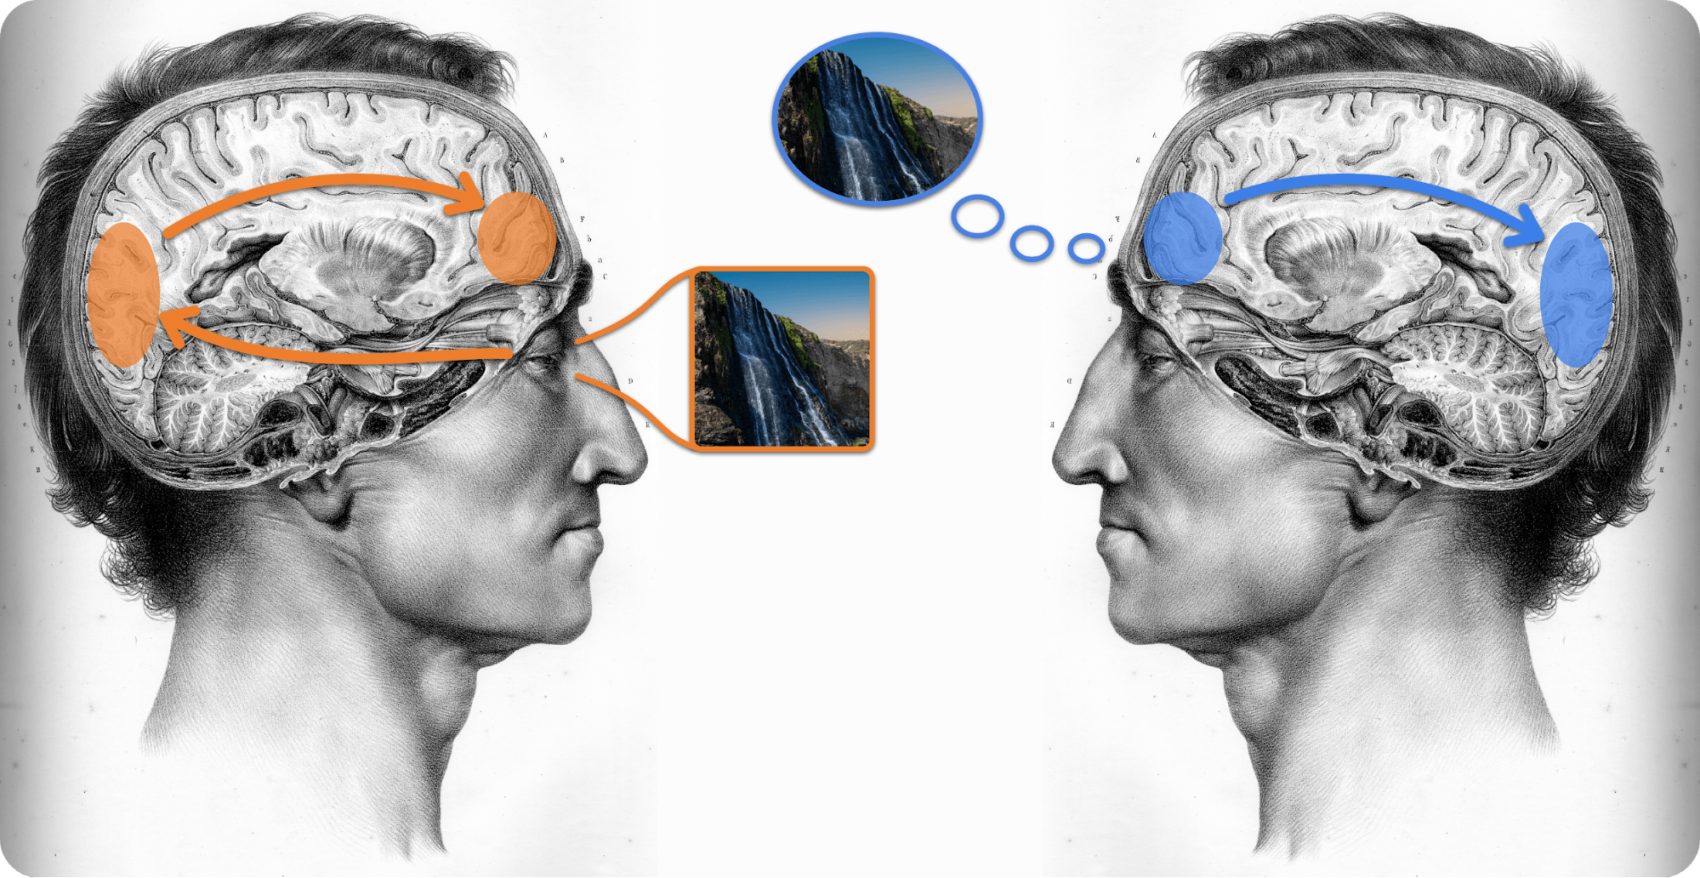 Visually seeing vs mental imagery in the mind's eye